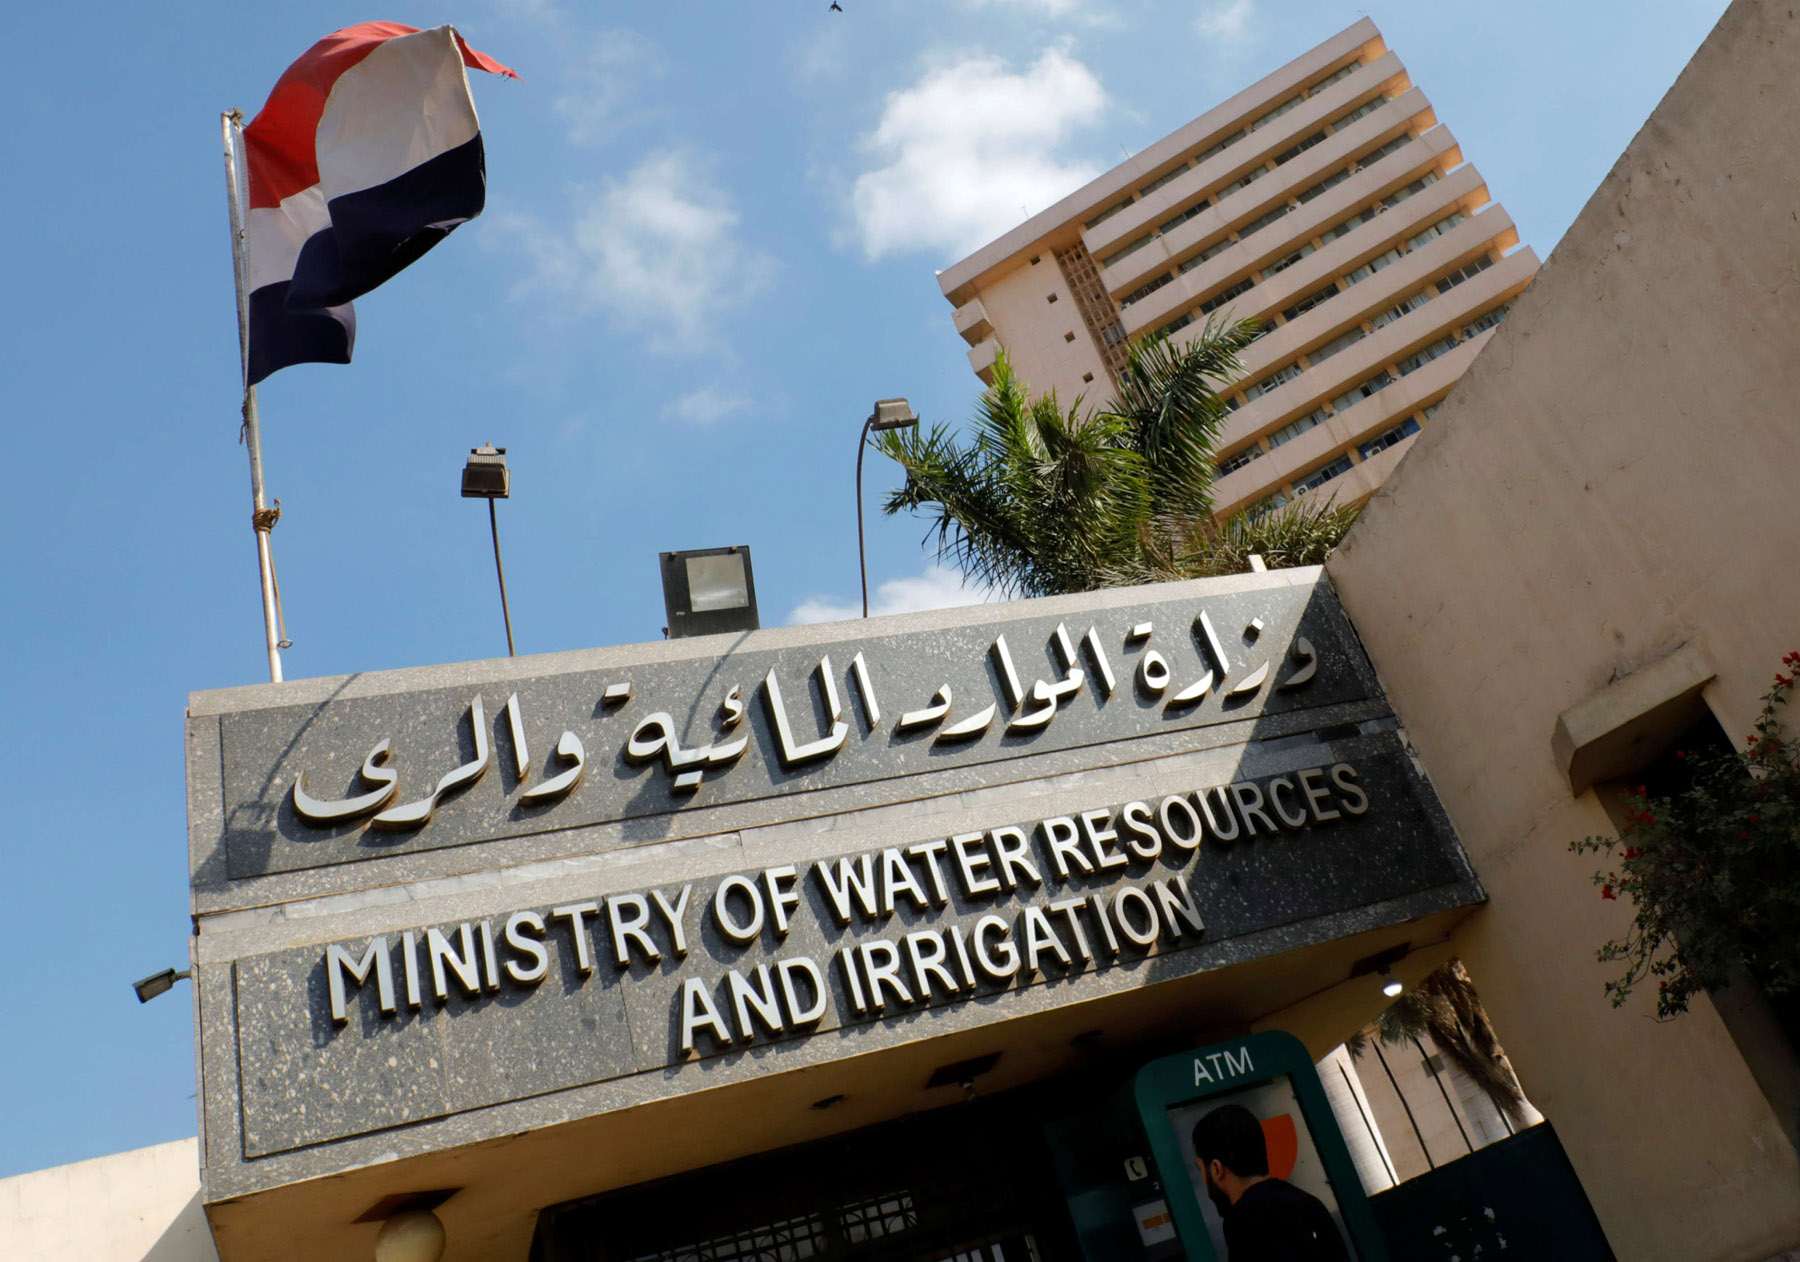 The Egyptian Ministry of Water Resources and Irrigation headquarters in Cairo, which hosted the meeting between Egypt, Ethiopia and Sudan over the disputed Nile dam, December 3. (Reuters)